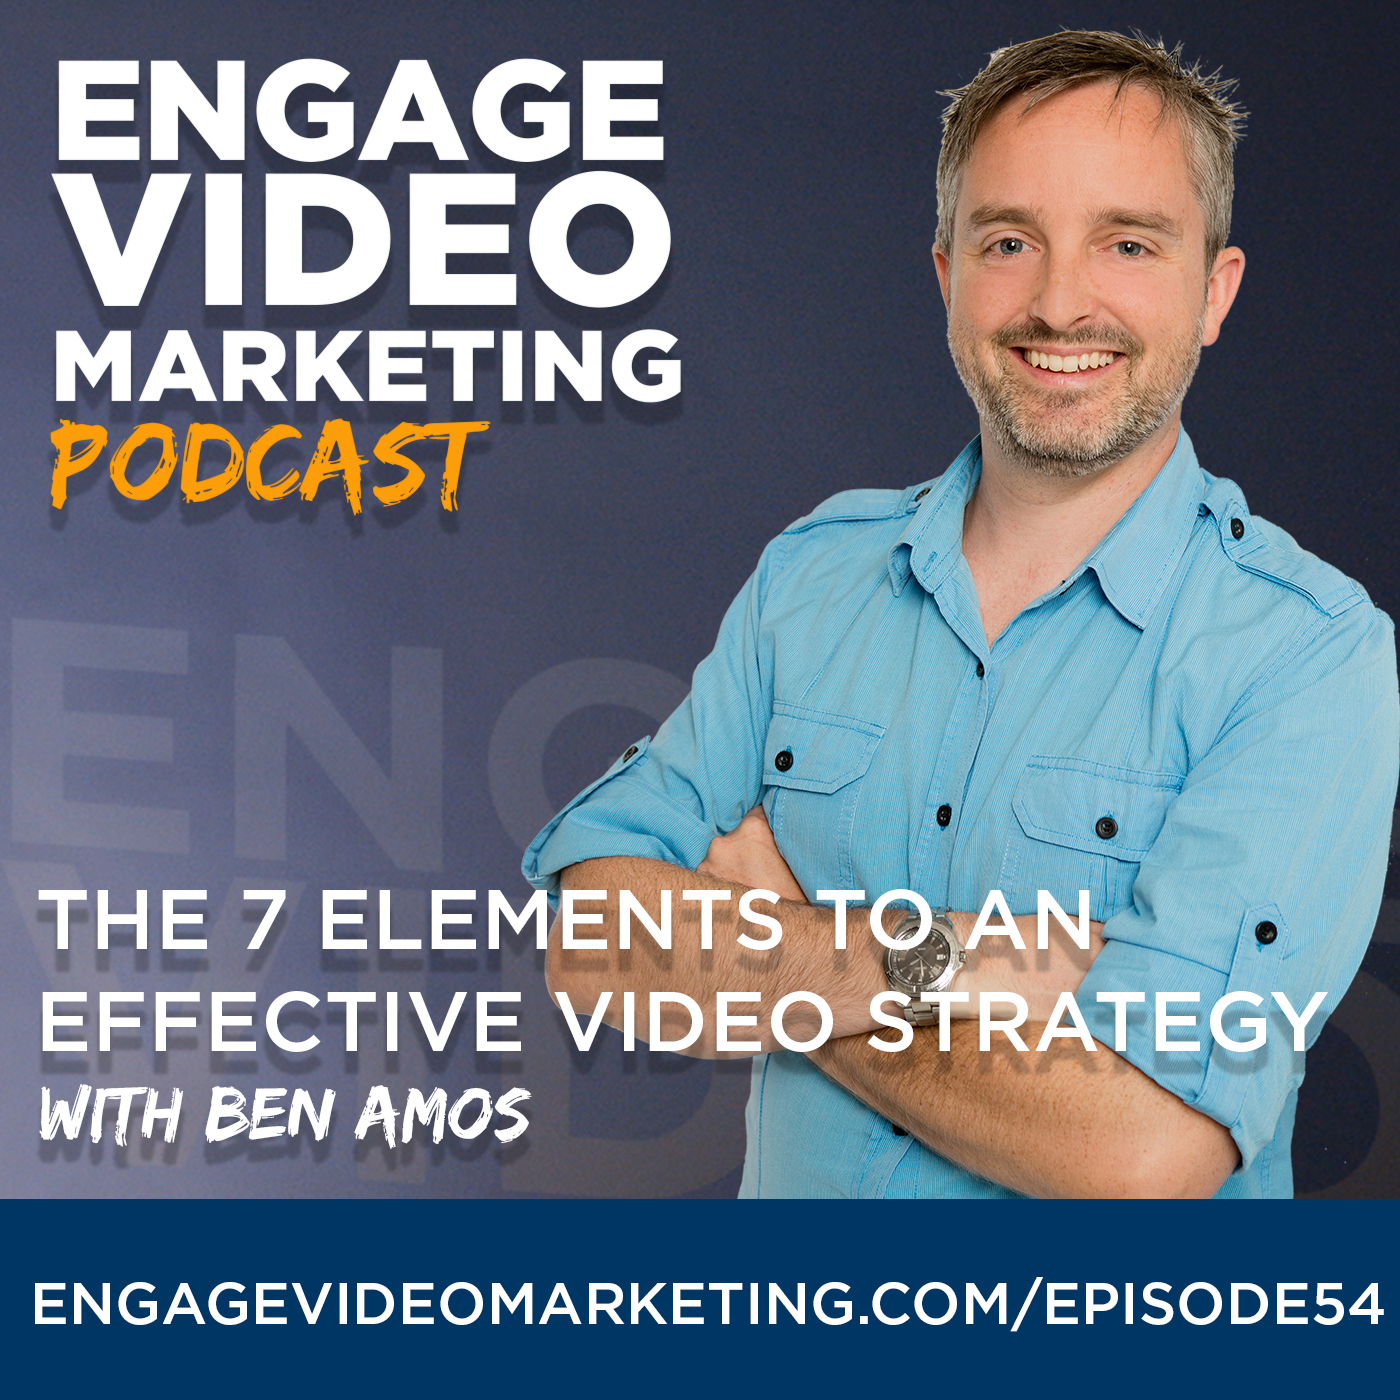 7 Elements to Effective Video Strategy